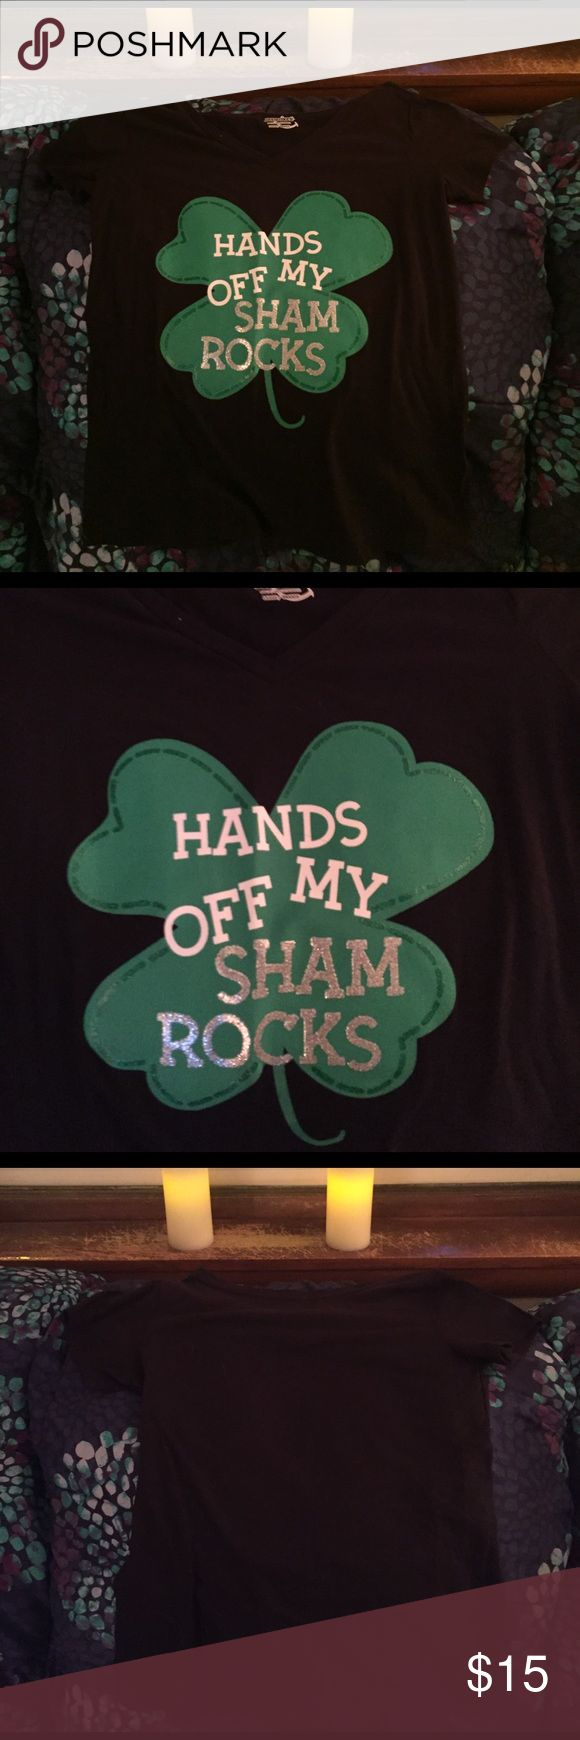 St Patrick's day t shirt Great big green four leaf clover with edges I. Green litter. White hands off lettering g. Silver glitter beautiful sham rocks lettering. Fits a size 8 in misses, snug but not uncomfortable for a 10. I eat a 19 in tops. Celebrate march 17 in style. Most party's will be on 15th and 16th.  Celebrate. NWOT Tops Tees - Short Sleeve